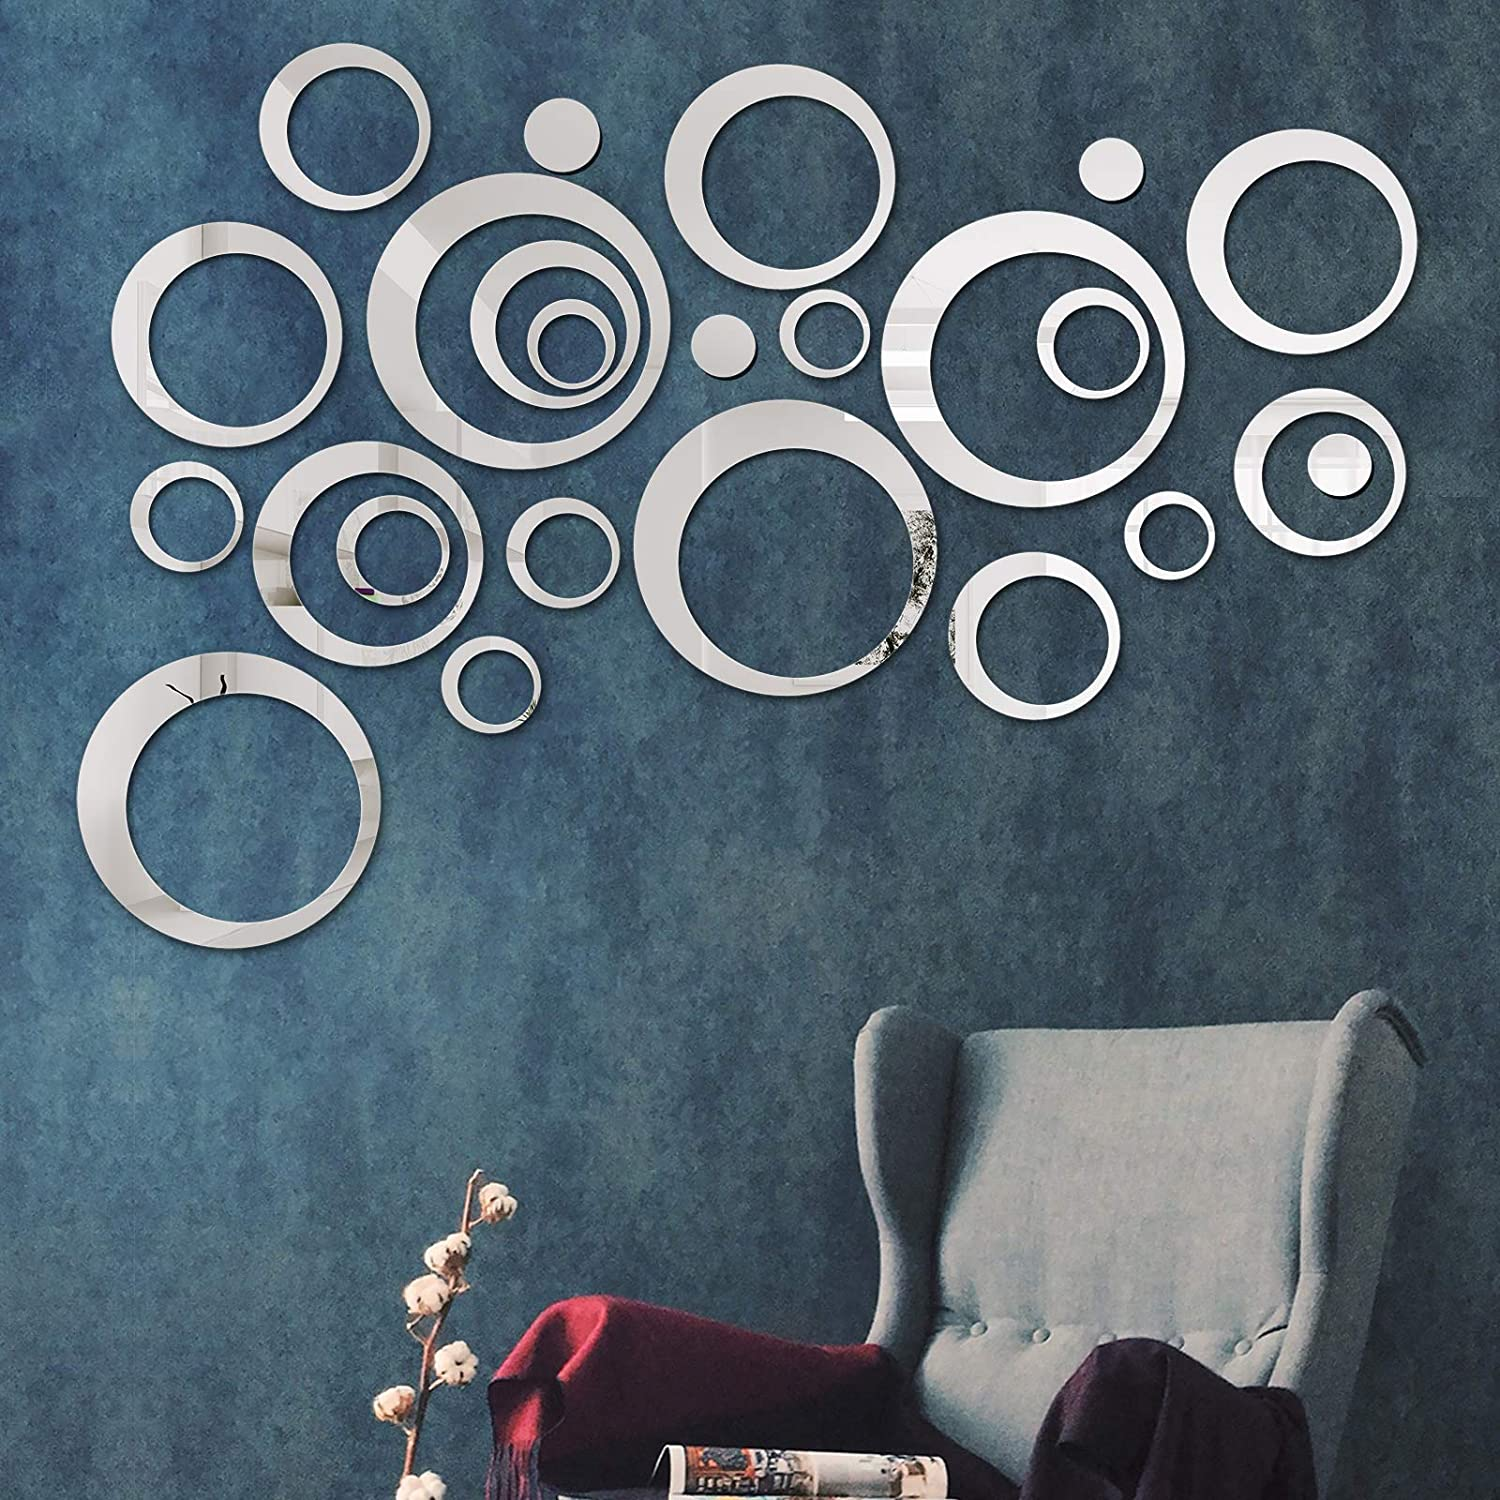 COCIVIVRE Mirror Wall Sticker, Removable Acrylic Circle Mirror Setting Wall Sticker 24pcs, DIY Family Wall Decor Sticker, 3D Mirror Sticker Wall Decoration for Living Room Home Bedroom, Silver